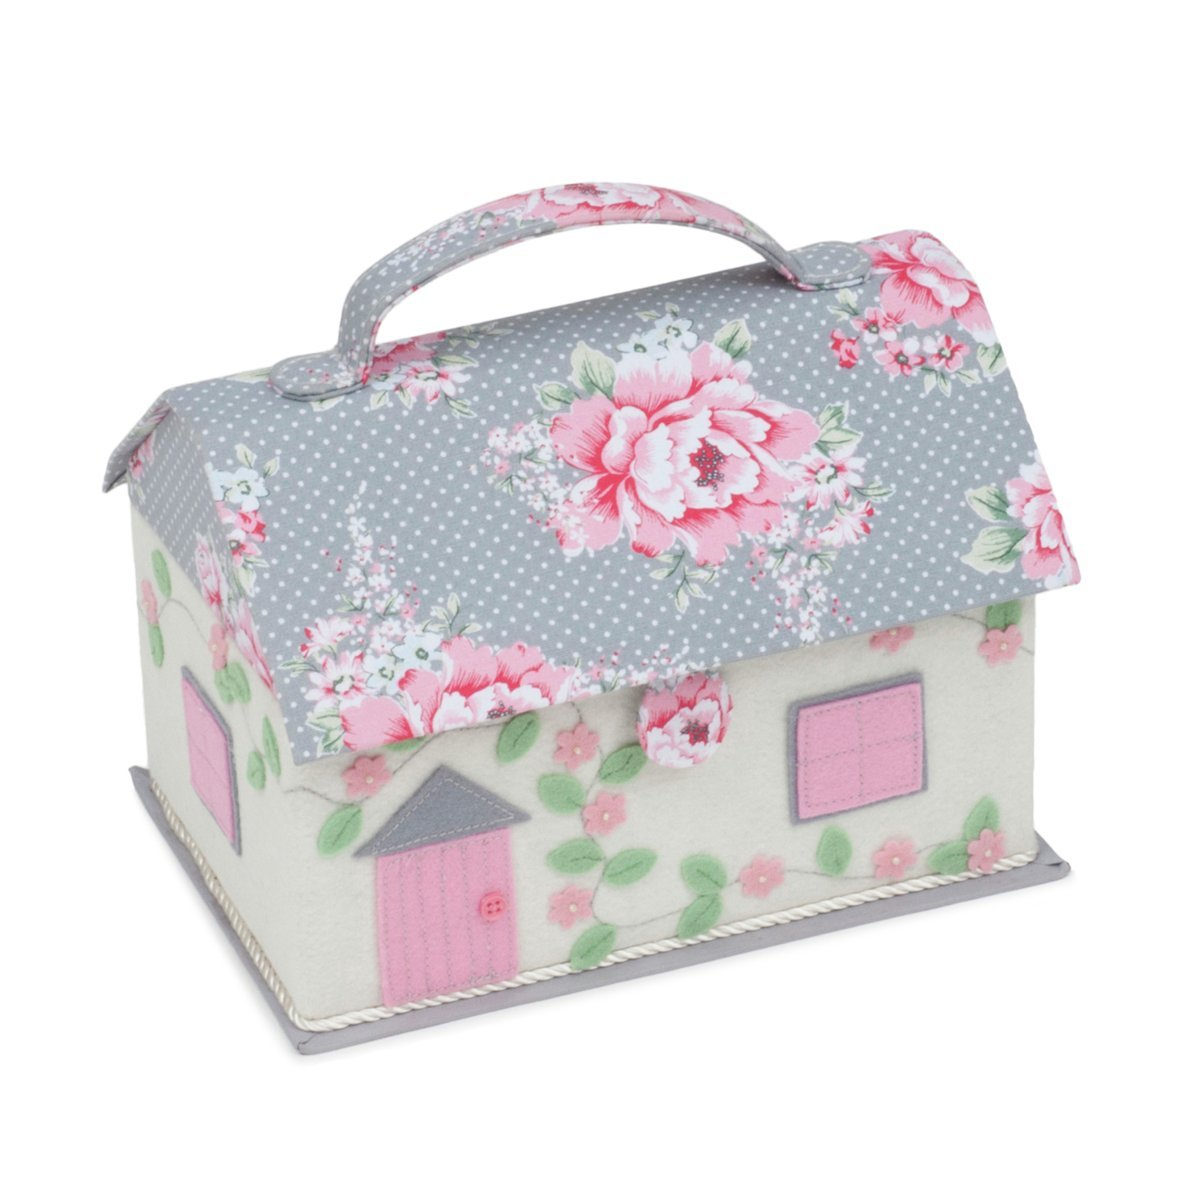 Hobby Gift Classic Cottage Sewing Box Beautiful Bloom by Hobby Gift